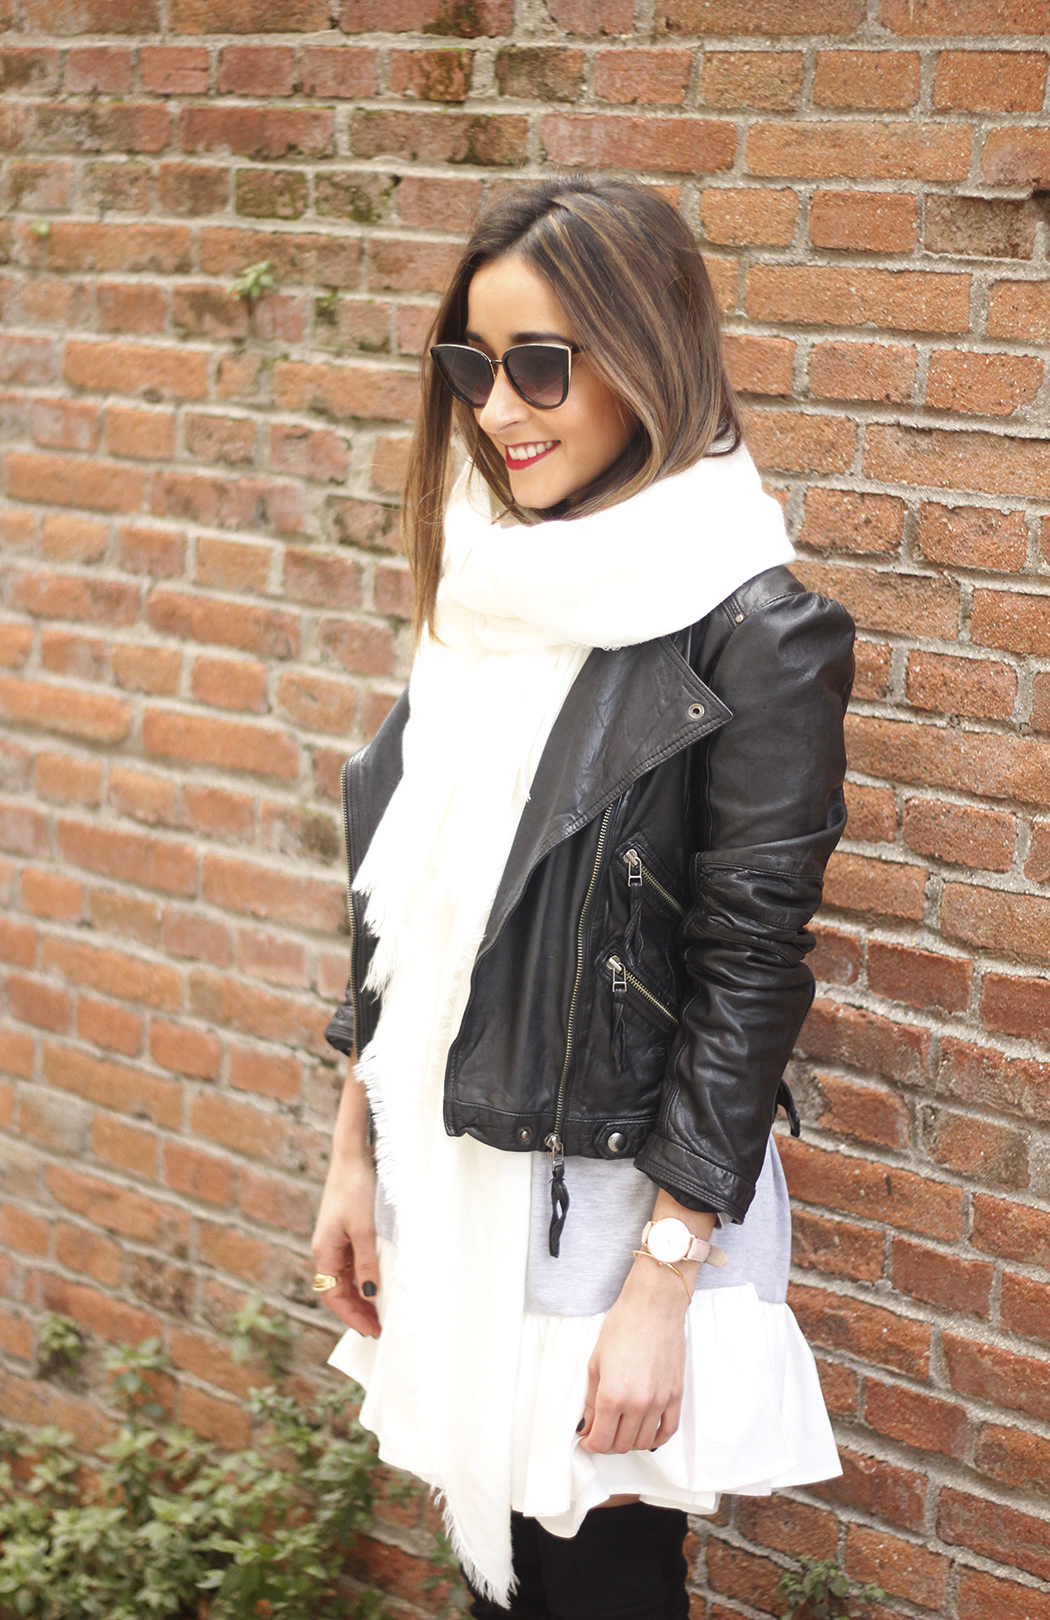 Leather Jacket gray dress over the knee boots style outfit fashion coach bag white scarf03